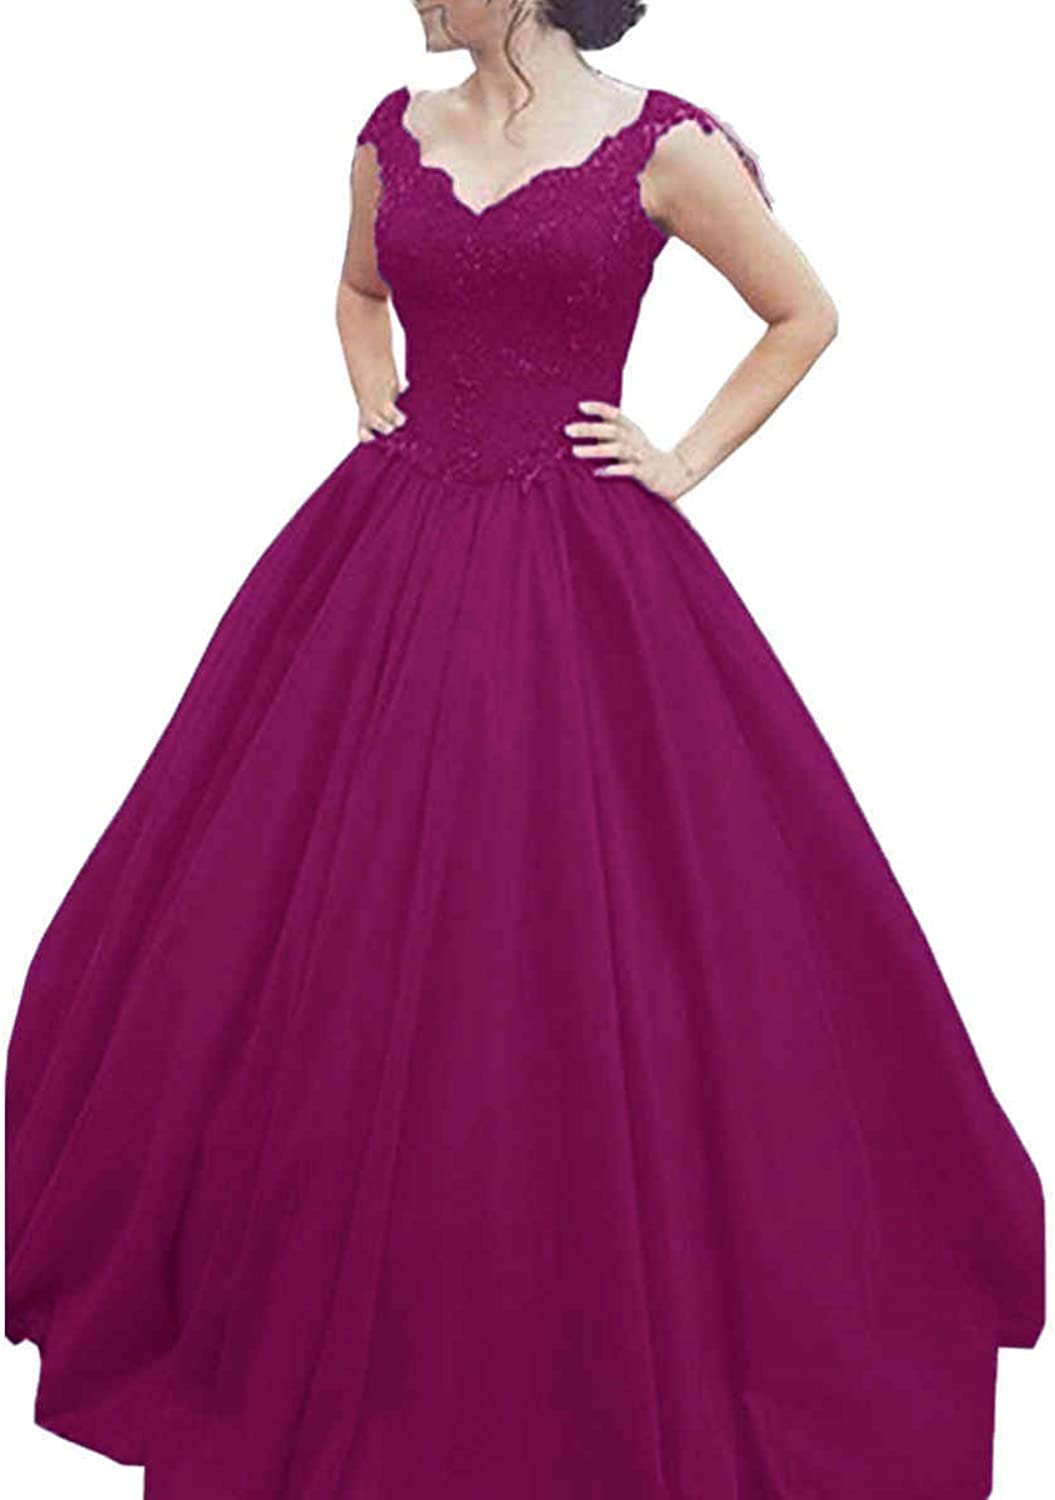 JQLD Womens Beaded Lace Prom Dress Cap Sleeve A Line Long Tulle Quinceanera Gown